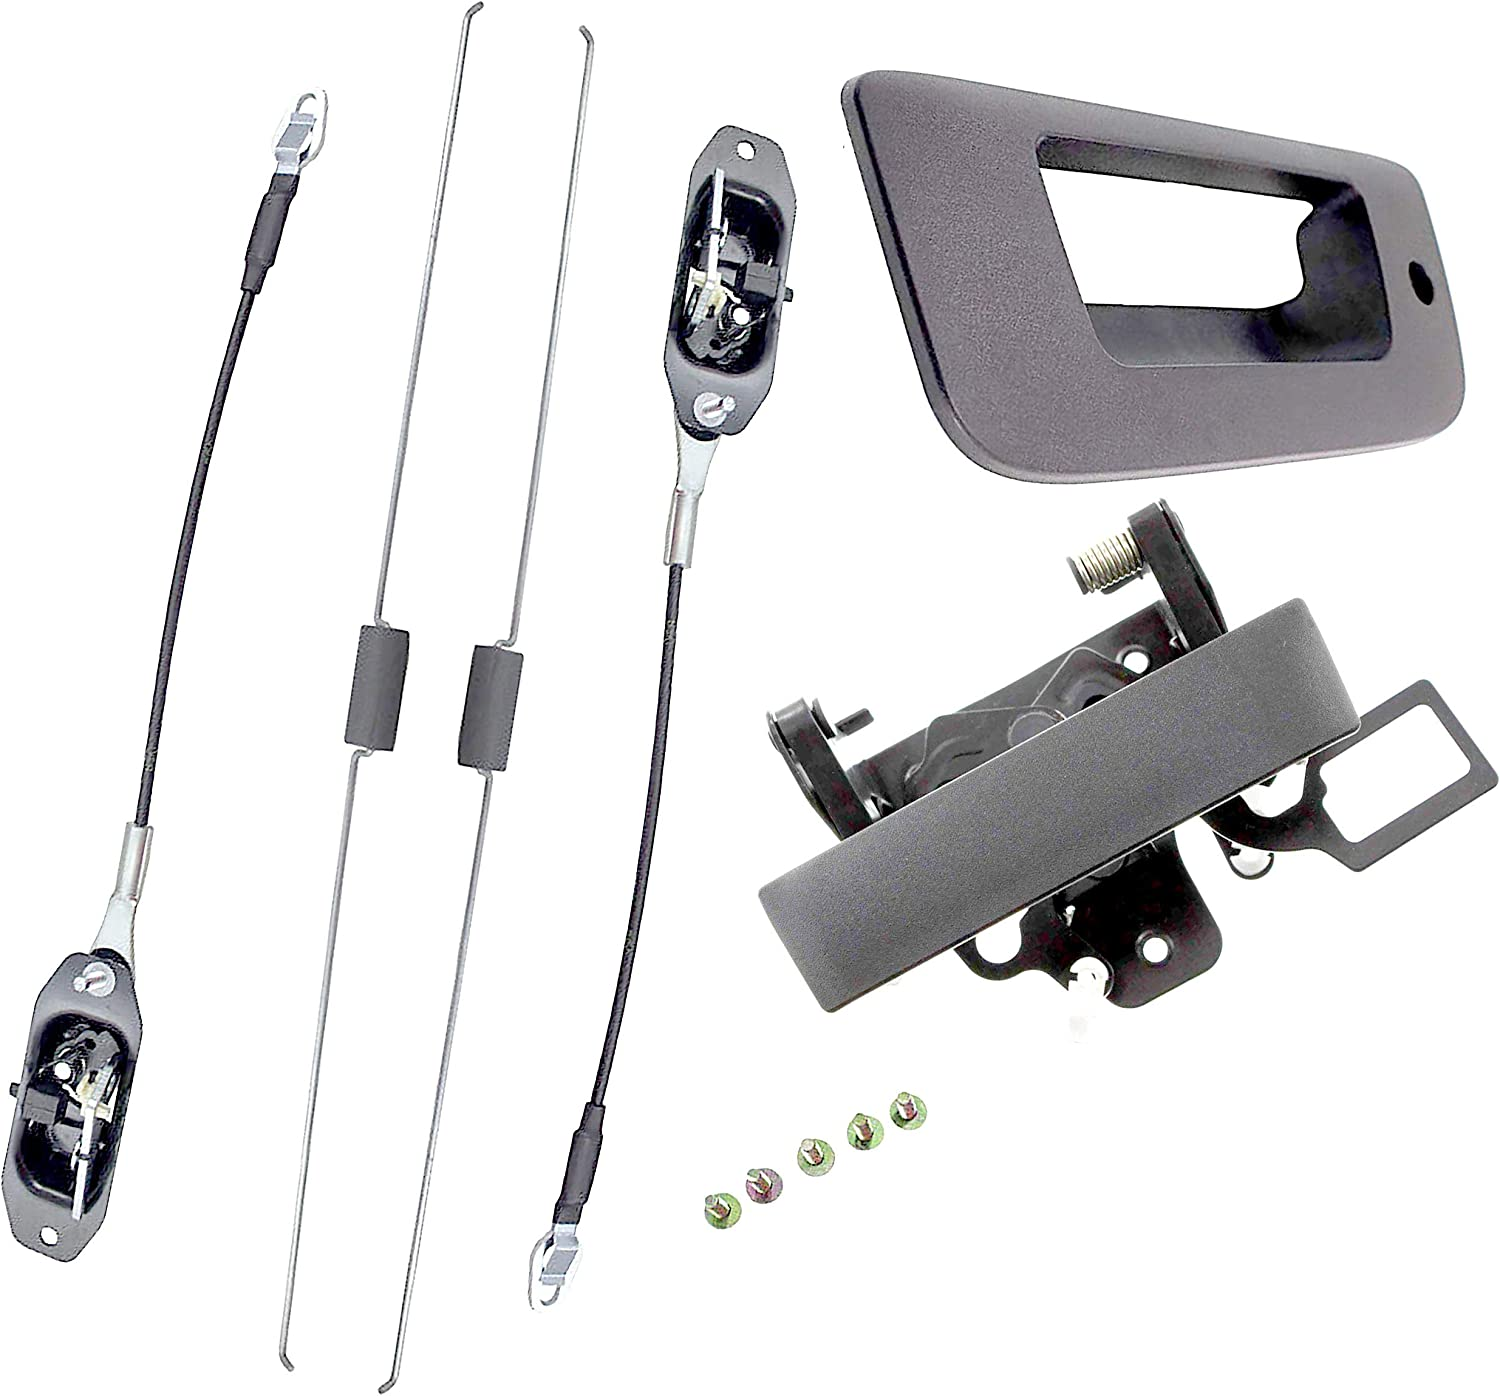 APDTY 140170 Tailgate Cable Latch Rod Handle & Trim Bezel With Keyhole Fits 2007-2013 Silverado or Sierra 2500 or 3500 Trucks With Locking Tailgate (Replaces 20927958, 20928119, 22755302, 25838260)